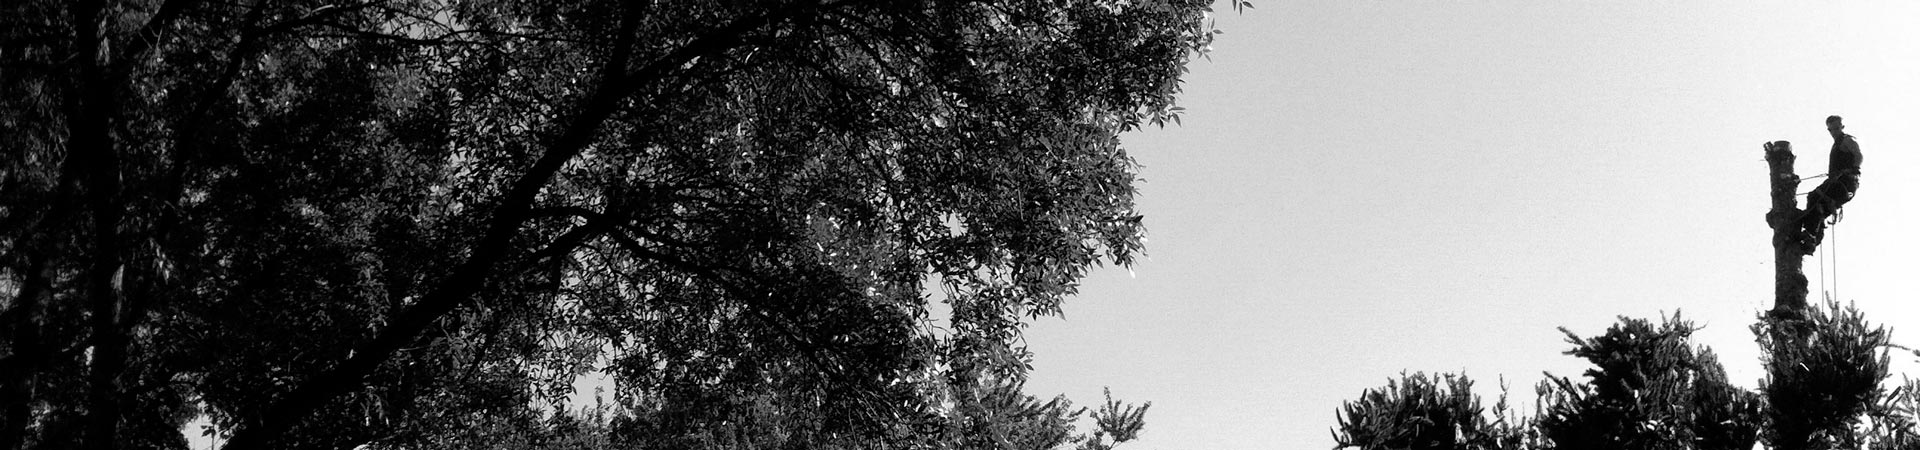 monster-tree-service-4-bw